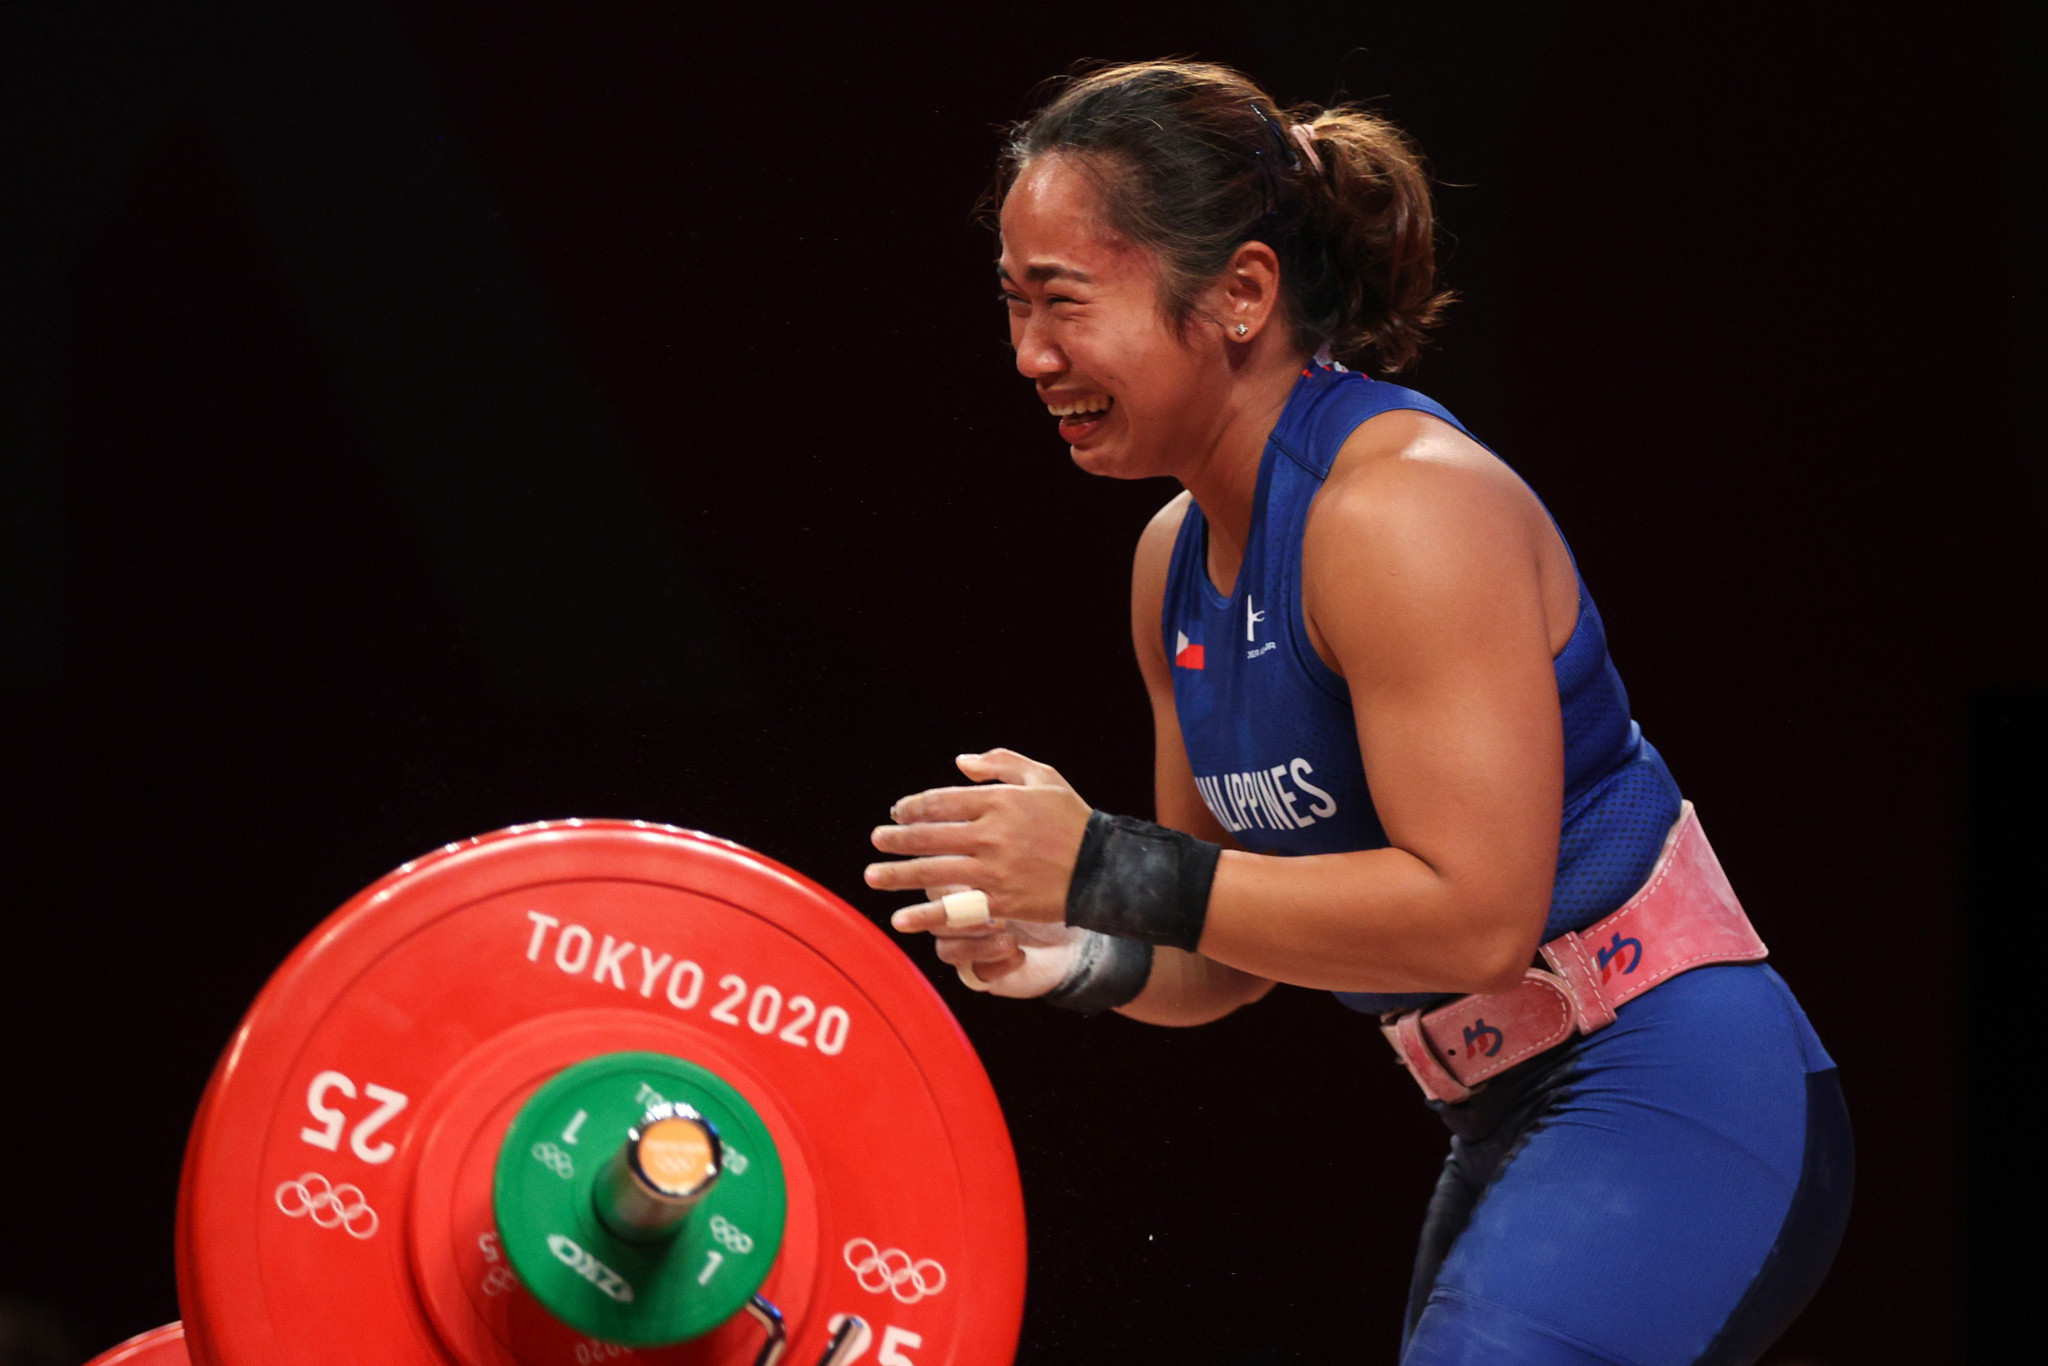 Weightlifter Hidilyn Diaz wins first-ever Olympic gold for Philippines